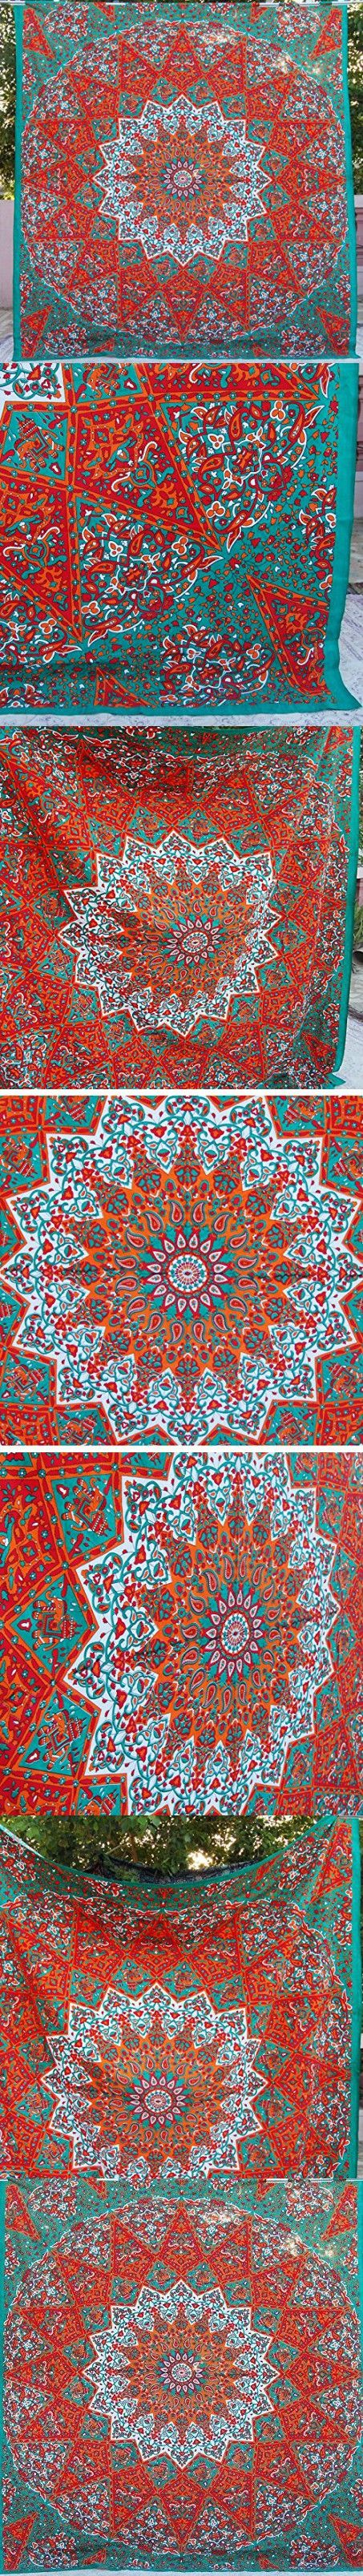 best 25 ethnic home decor ideas on pinterest balcony for dogs jaipurhandloom queen indian star mandala psychedelic tapestry hippie bohemian wall hanging tapestries bedspread bedding